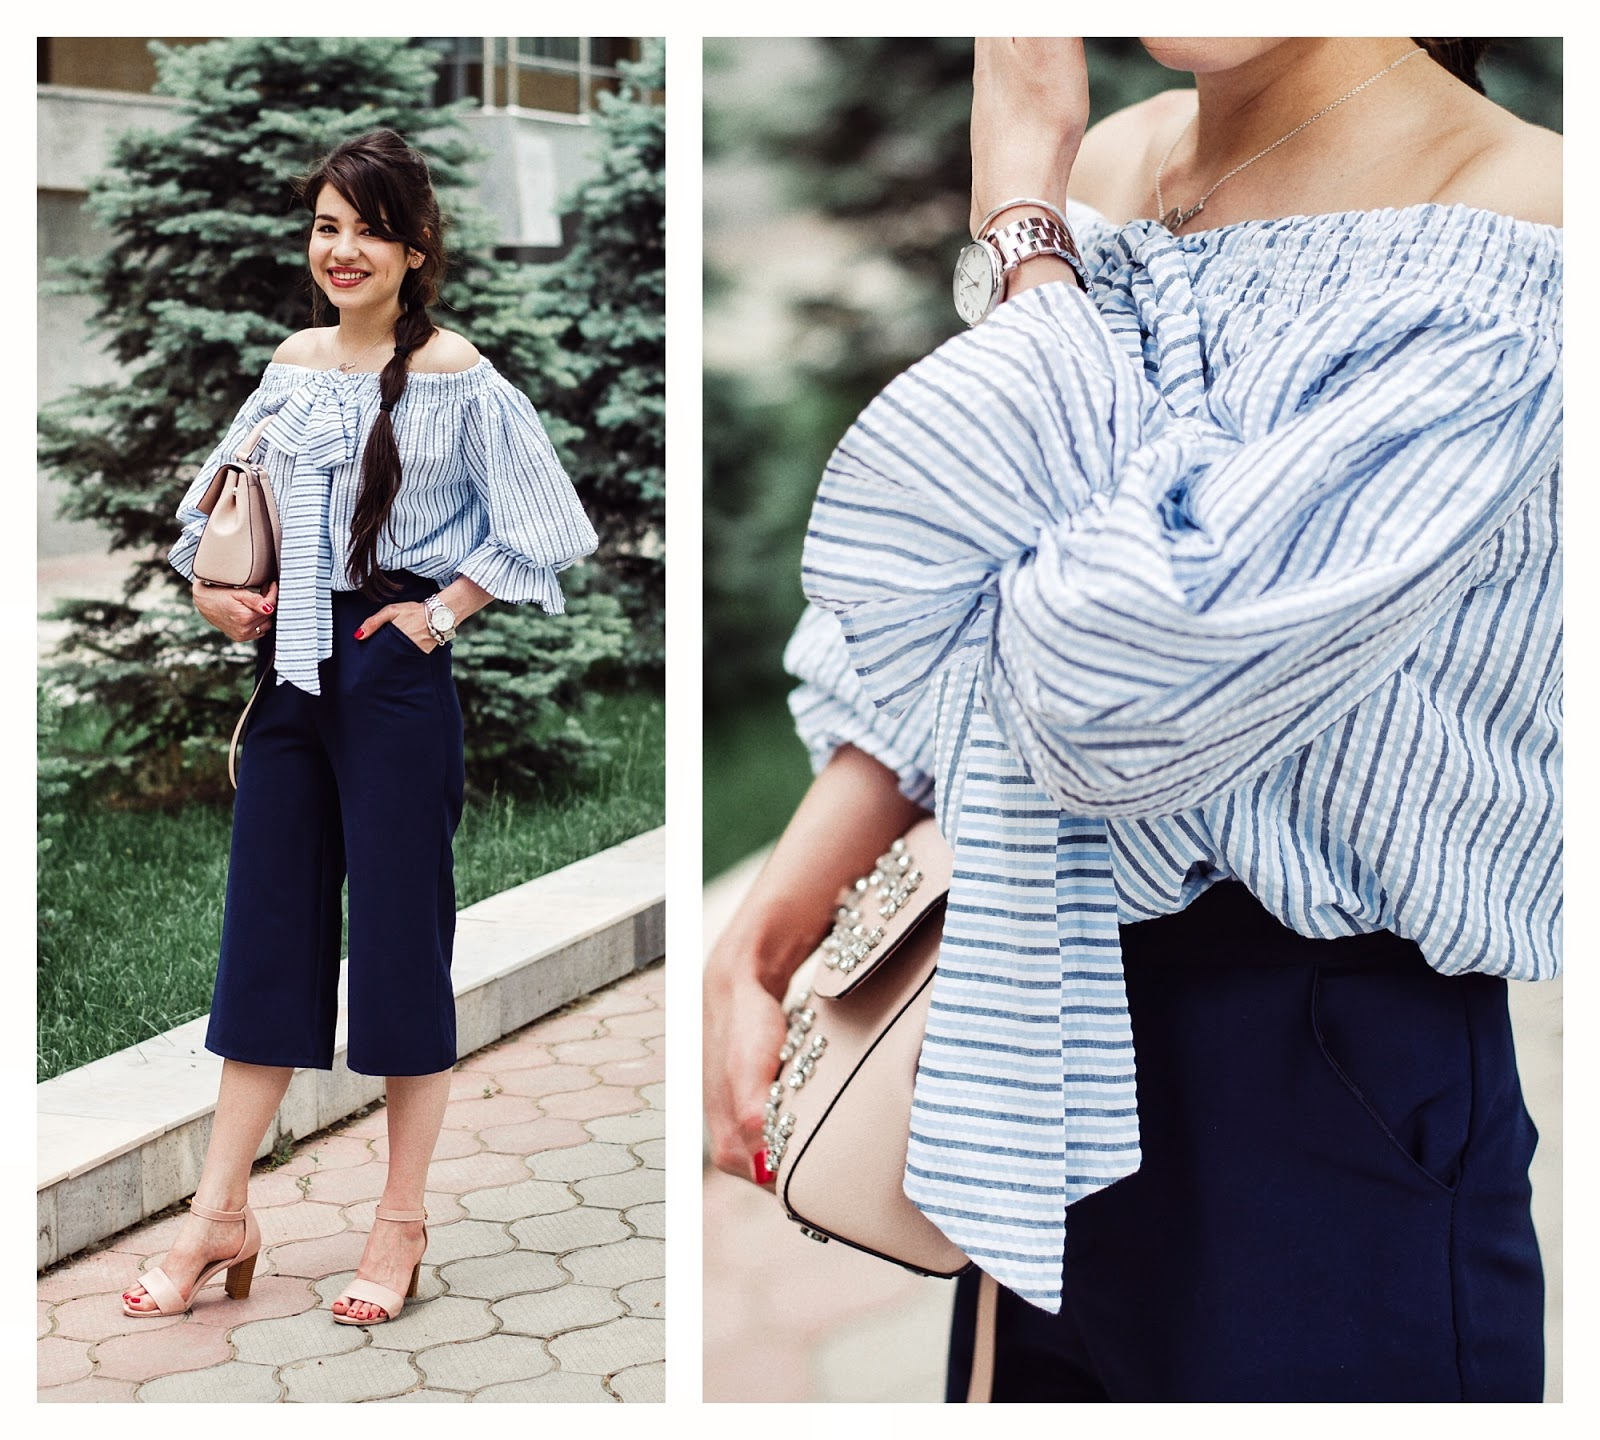 fashion blogger diyorasnotes diyora beta off shoulders top stripped top culottes rink sandals michael kors bag